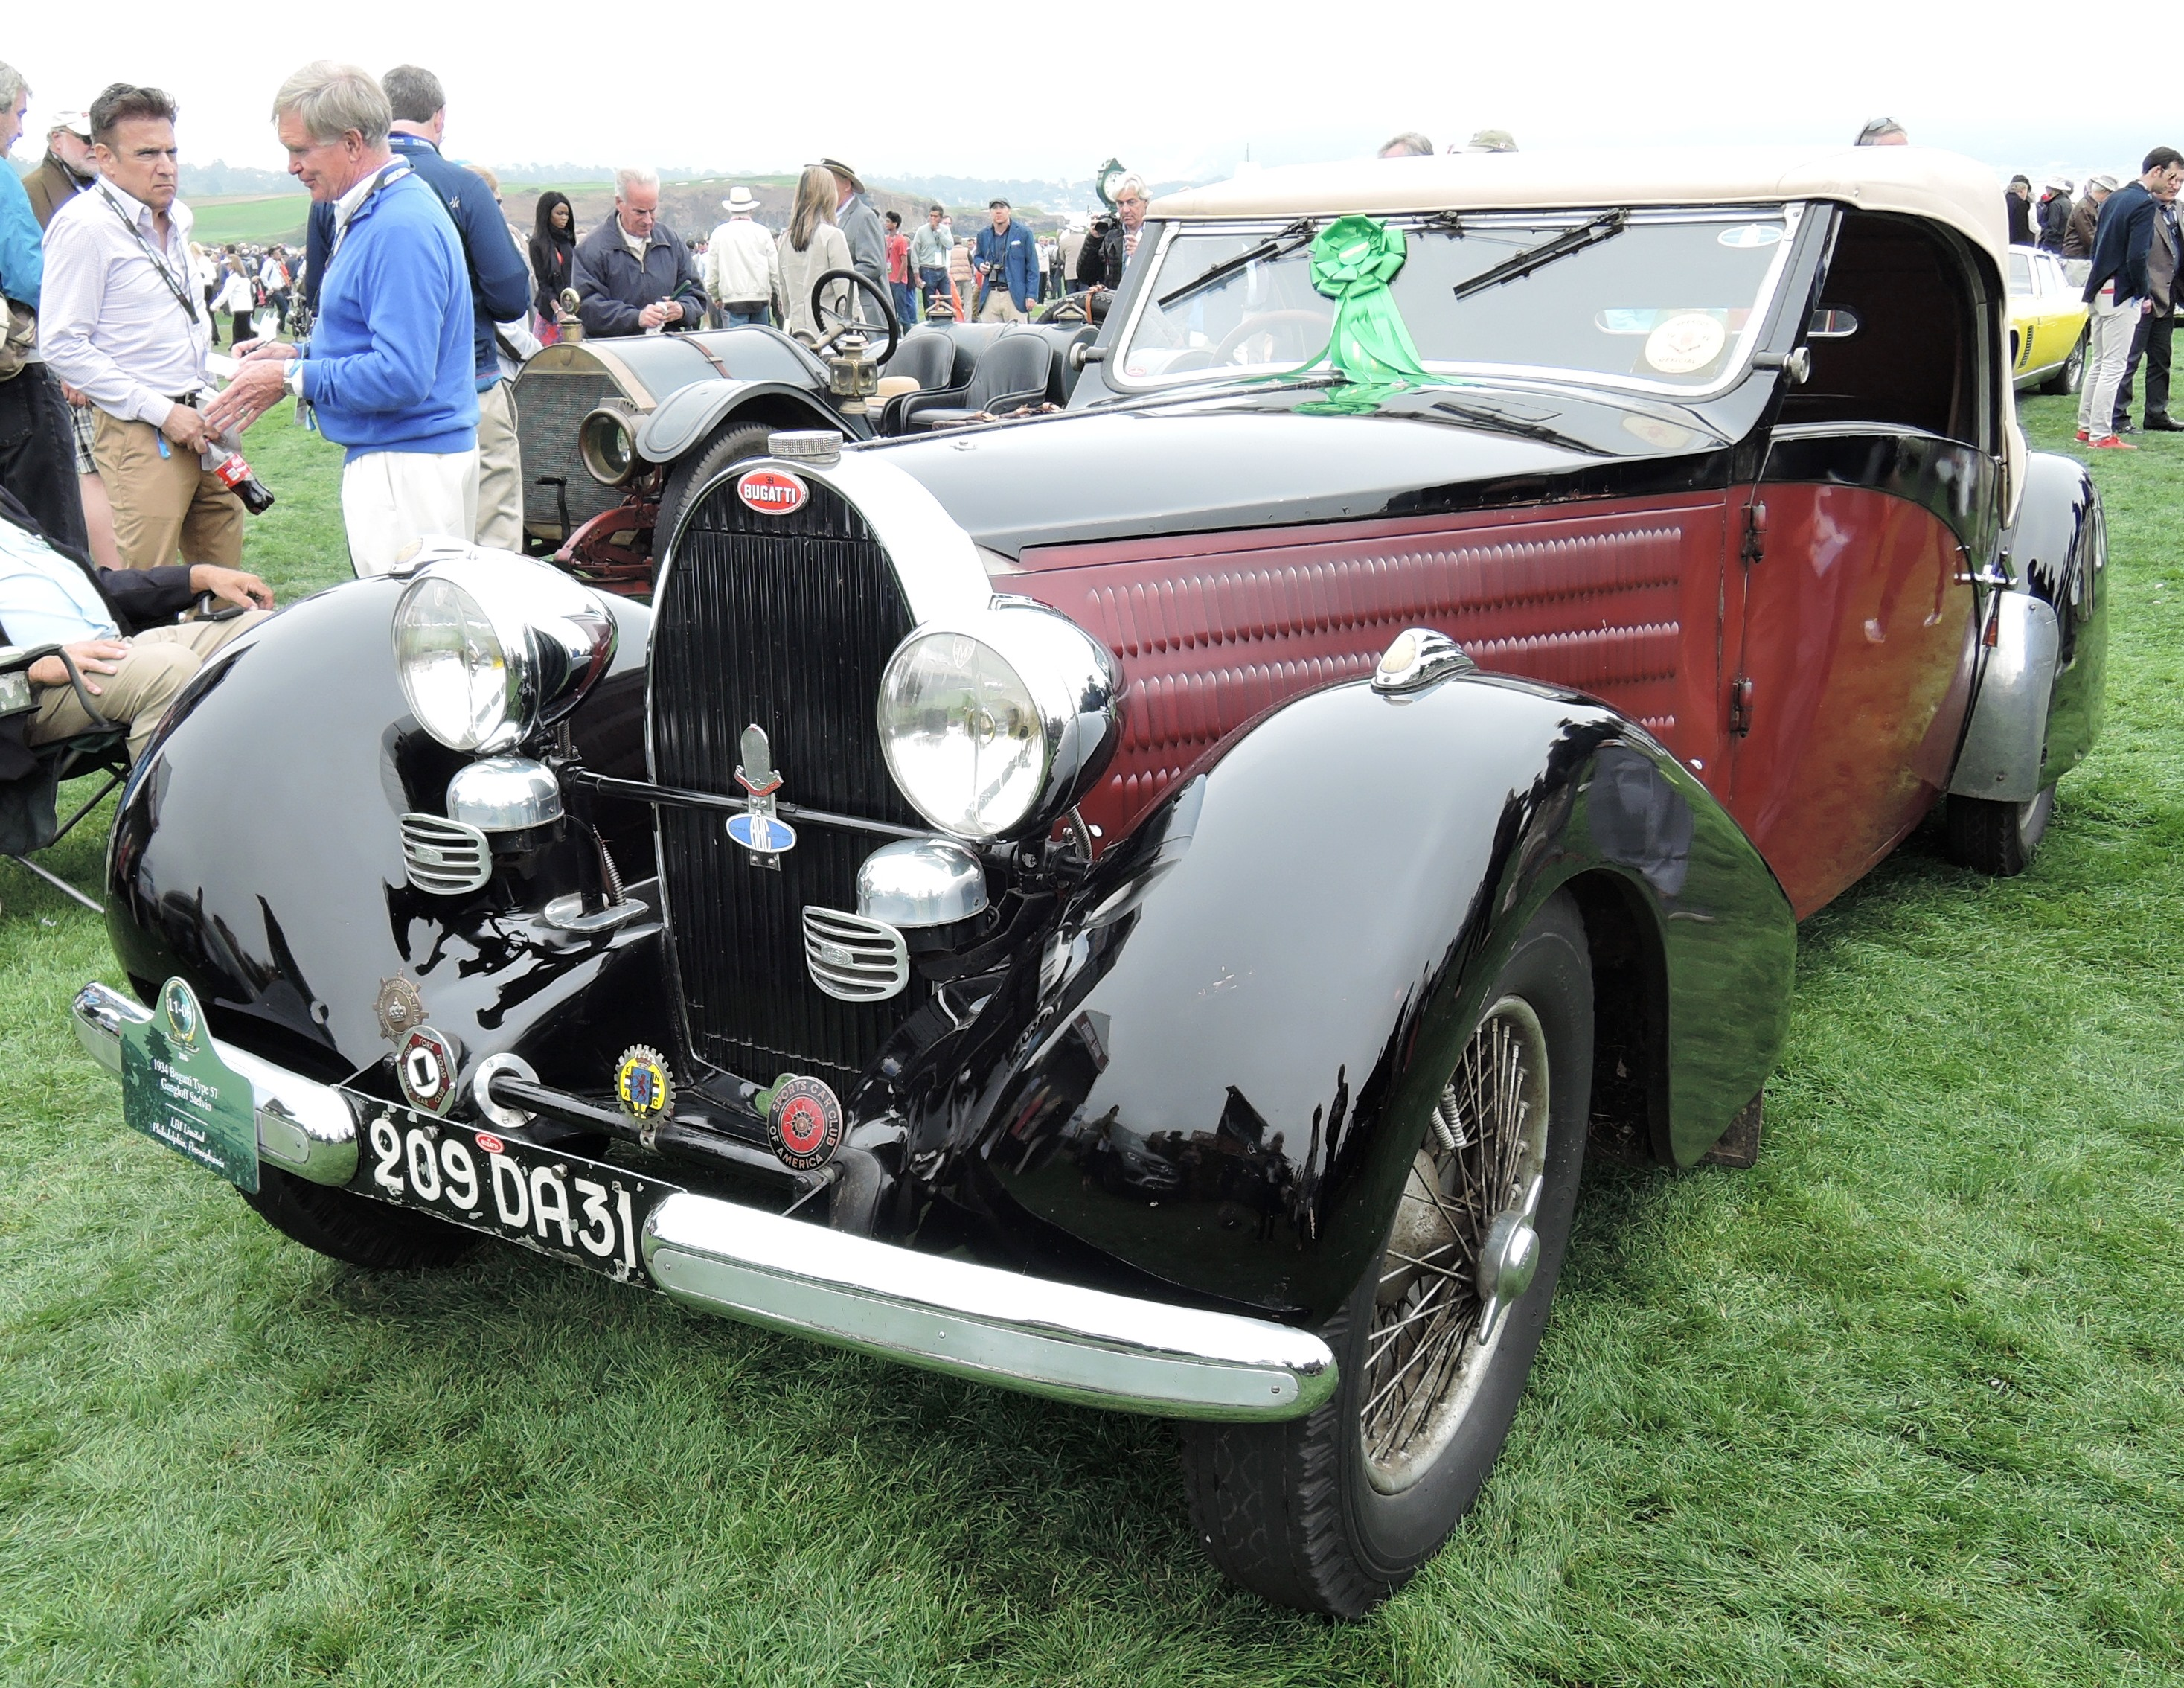 black/red 1934 Bugatti Type 57 Gangloff Stelvio - Pebble Beach Concours d'Elegance 2016